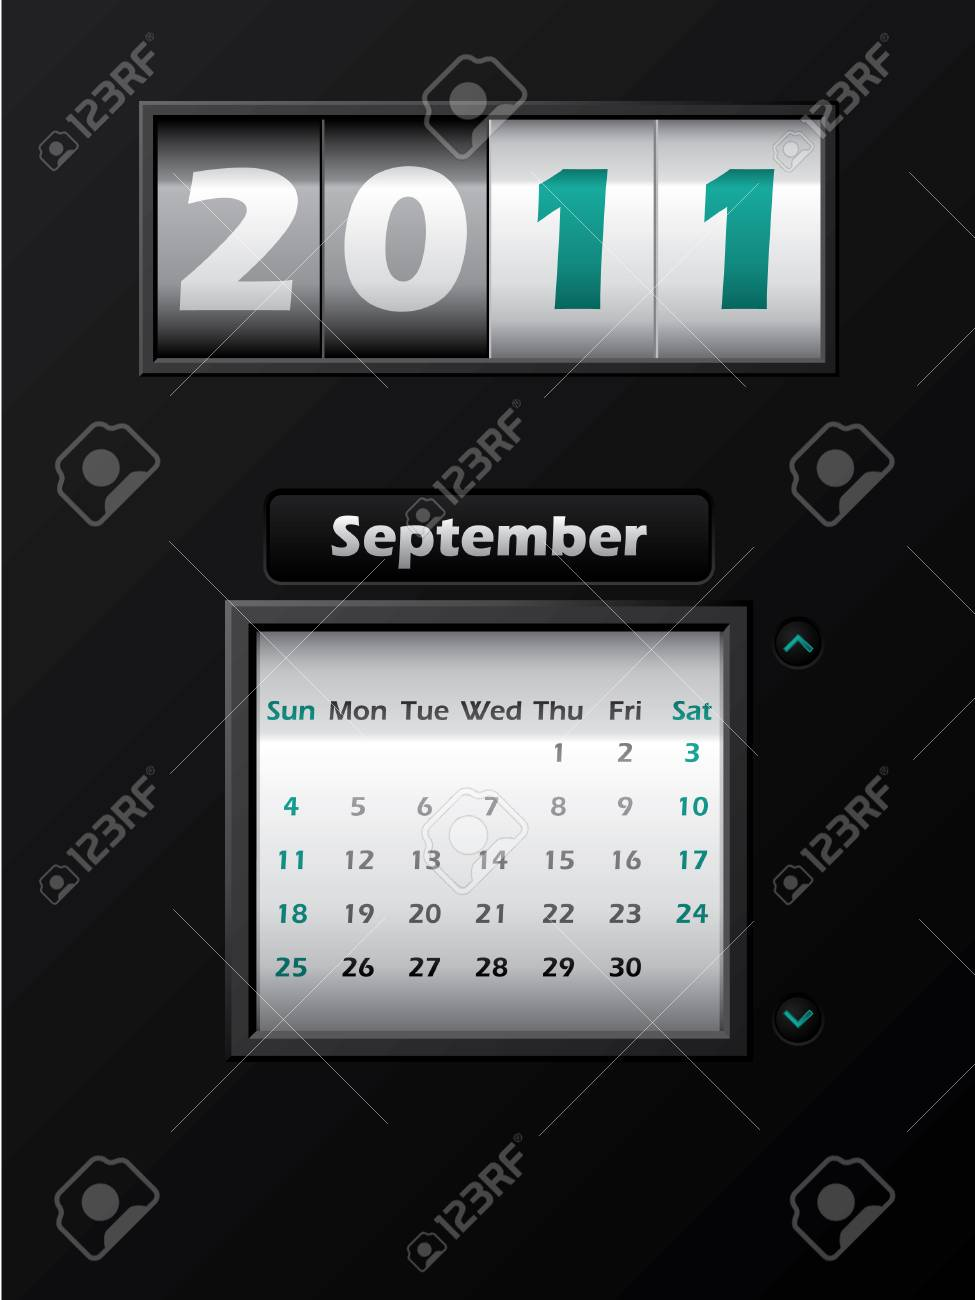 2011 september month counter calendar Stock Vector - 8127748